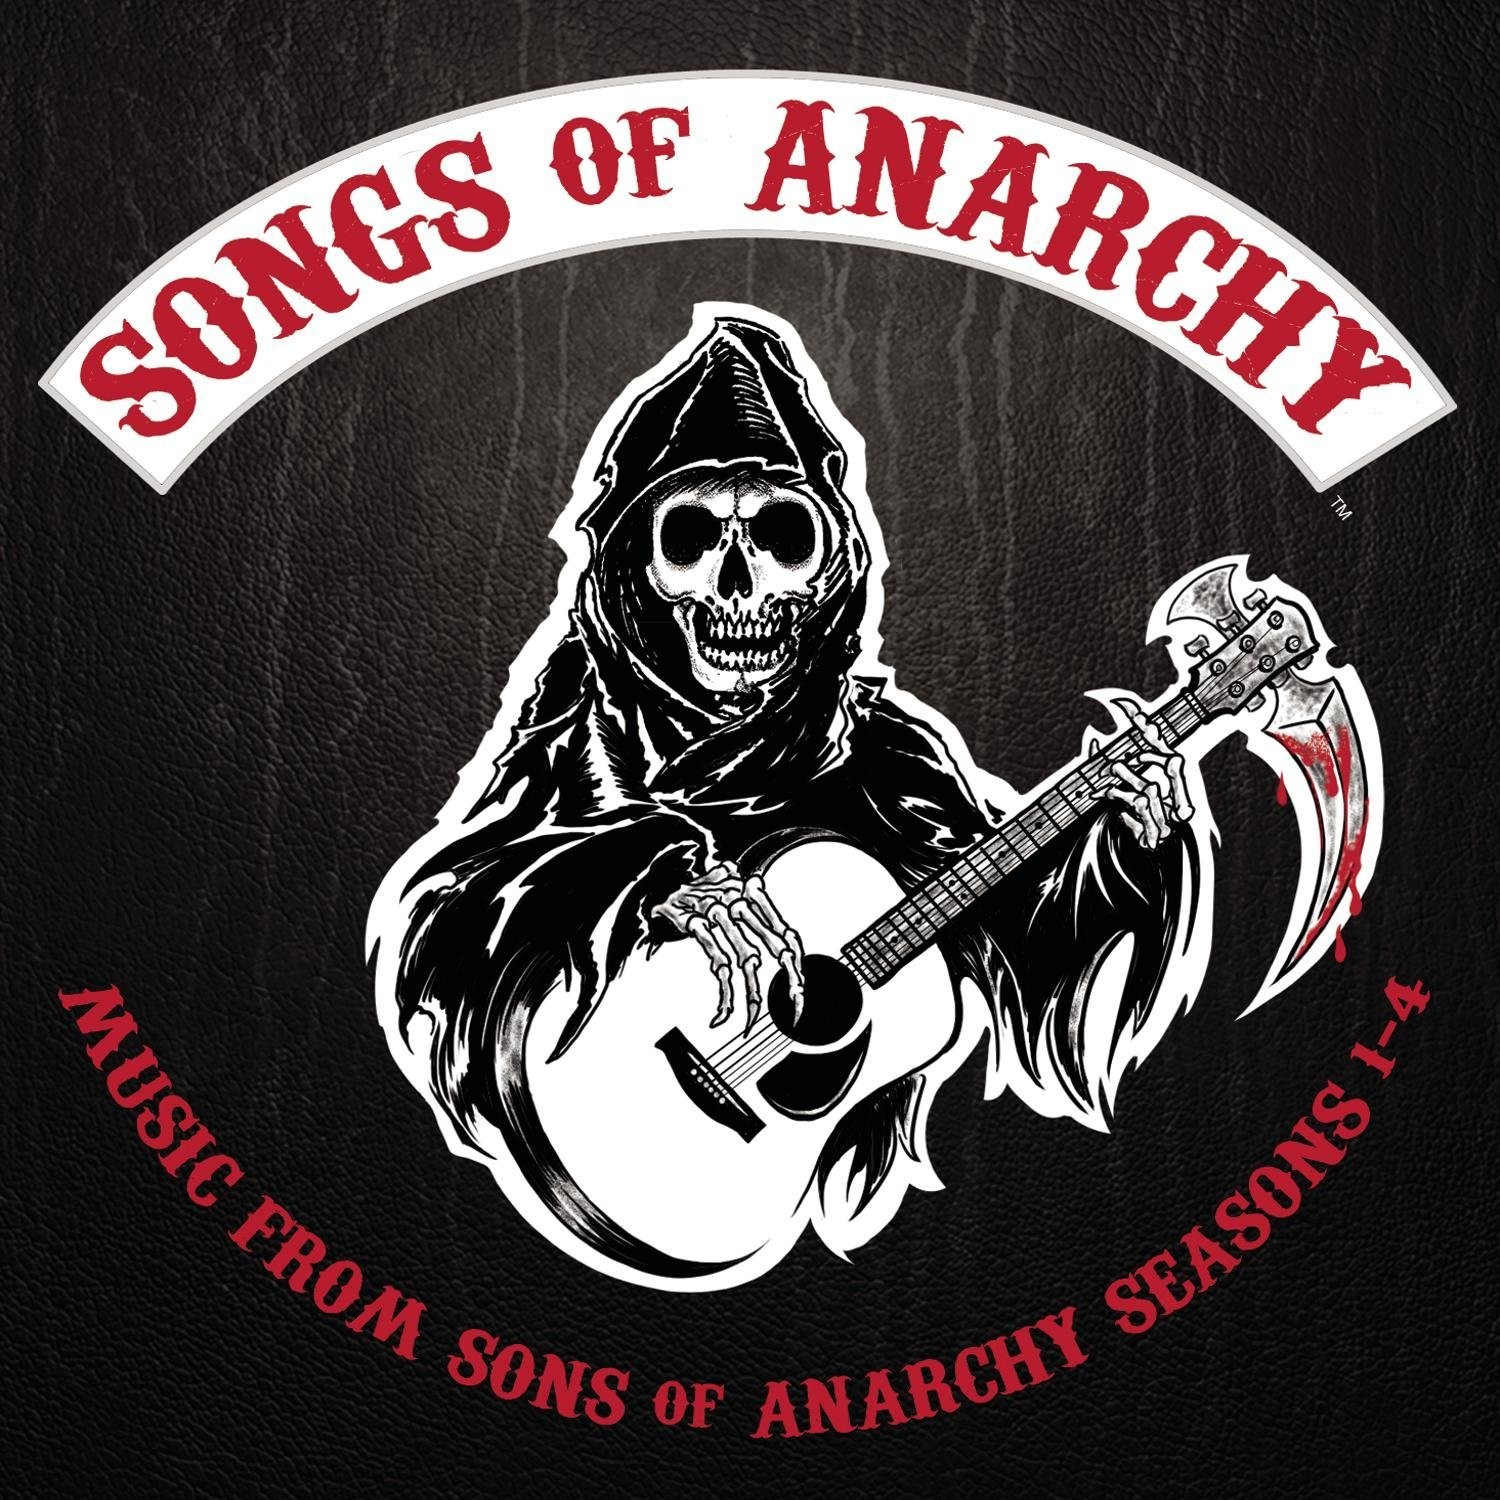 Soundtrack -  Sons Of Anarchy : Songs Of Anarchy  Music From Sons Of Anarchy Seasons 1-4 2XLP